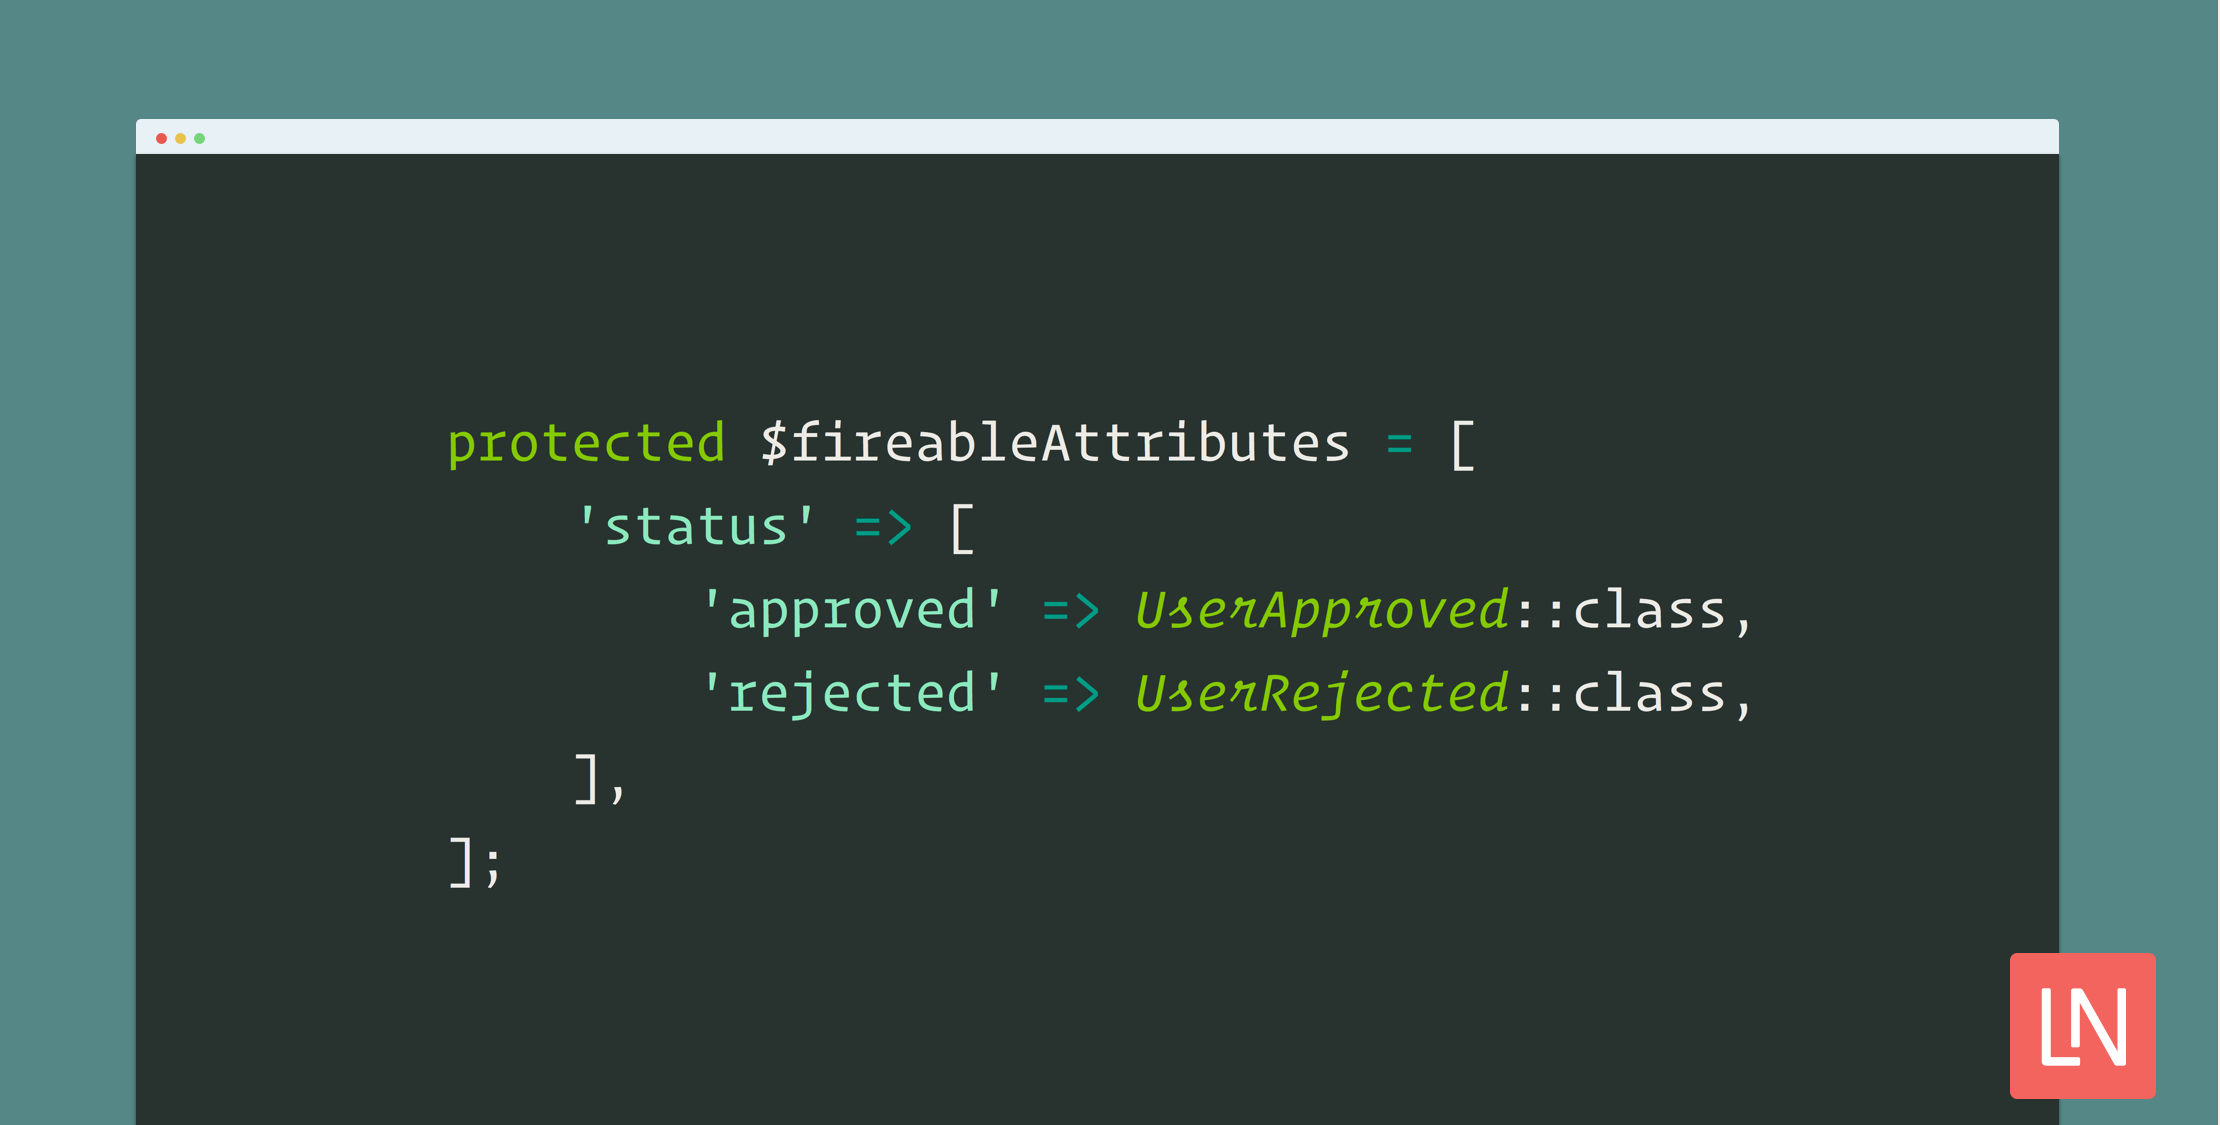 laravel-fireable-attributes.png